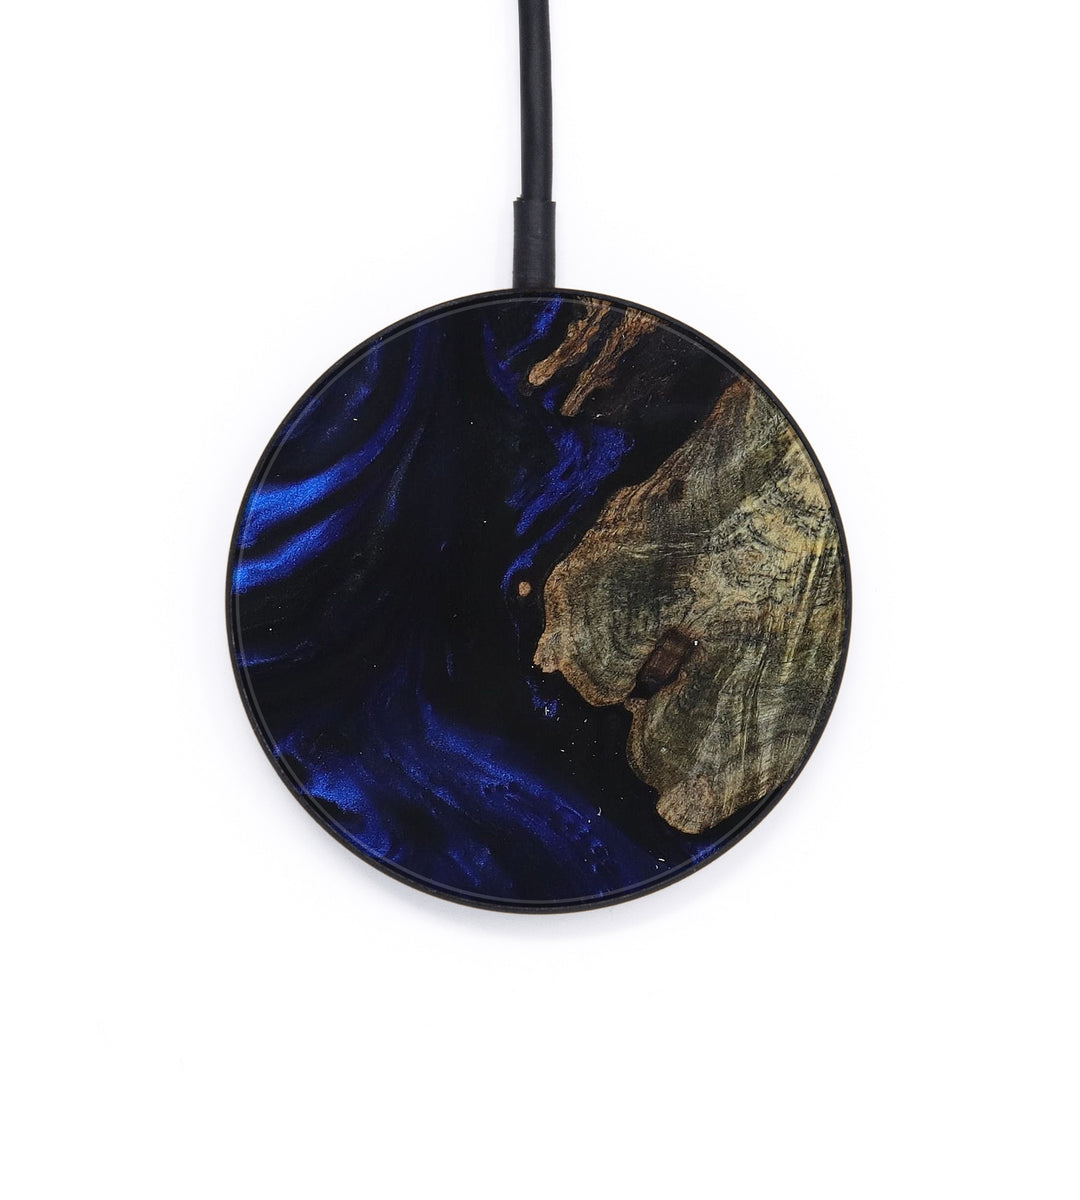 Circle Wood+Resin Wireless Charger - Lynnette (Dark Blue, 392926)